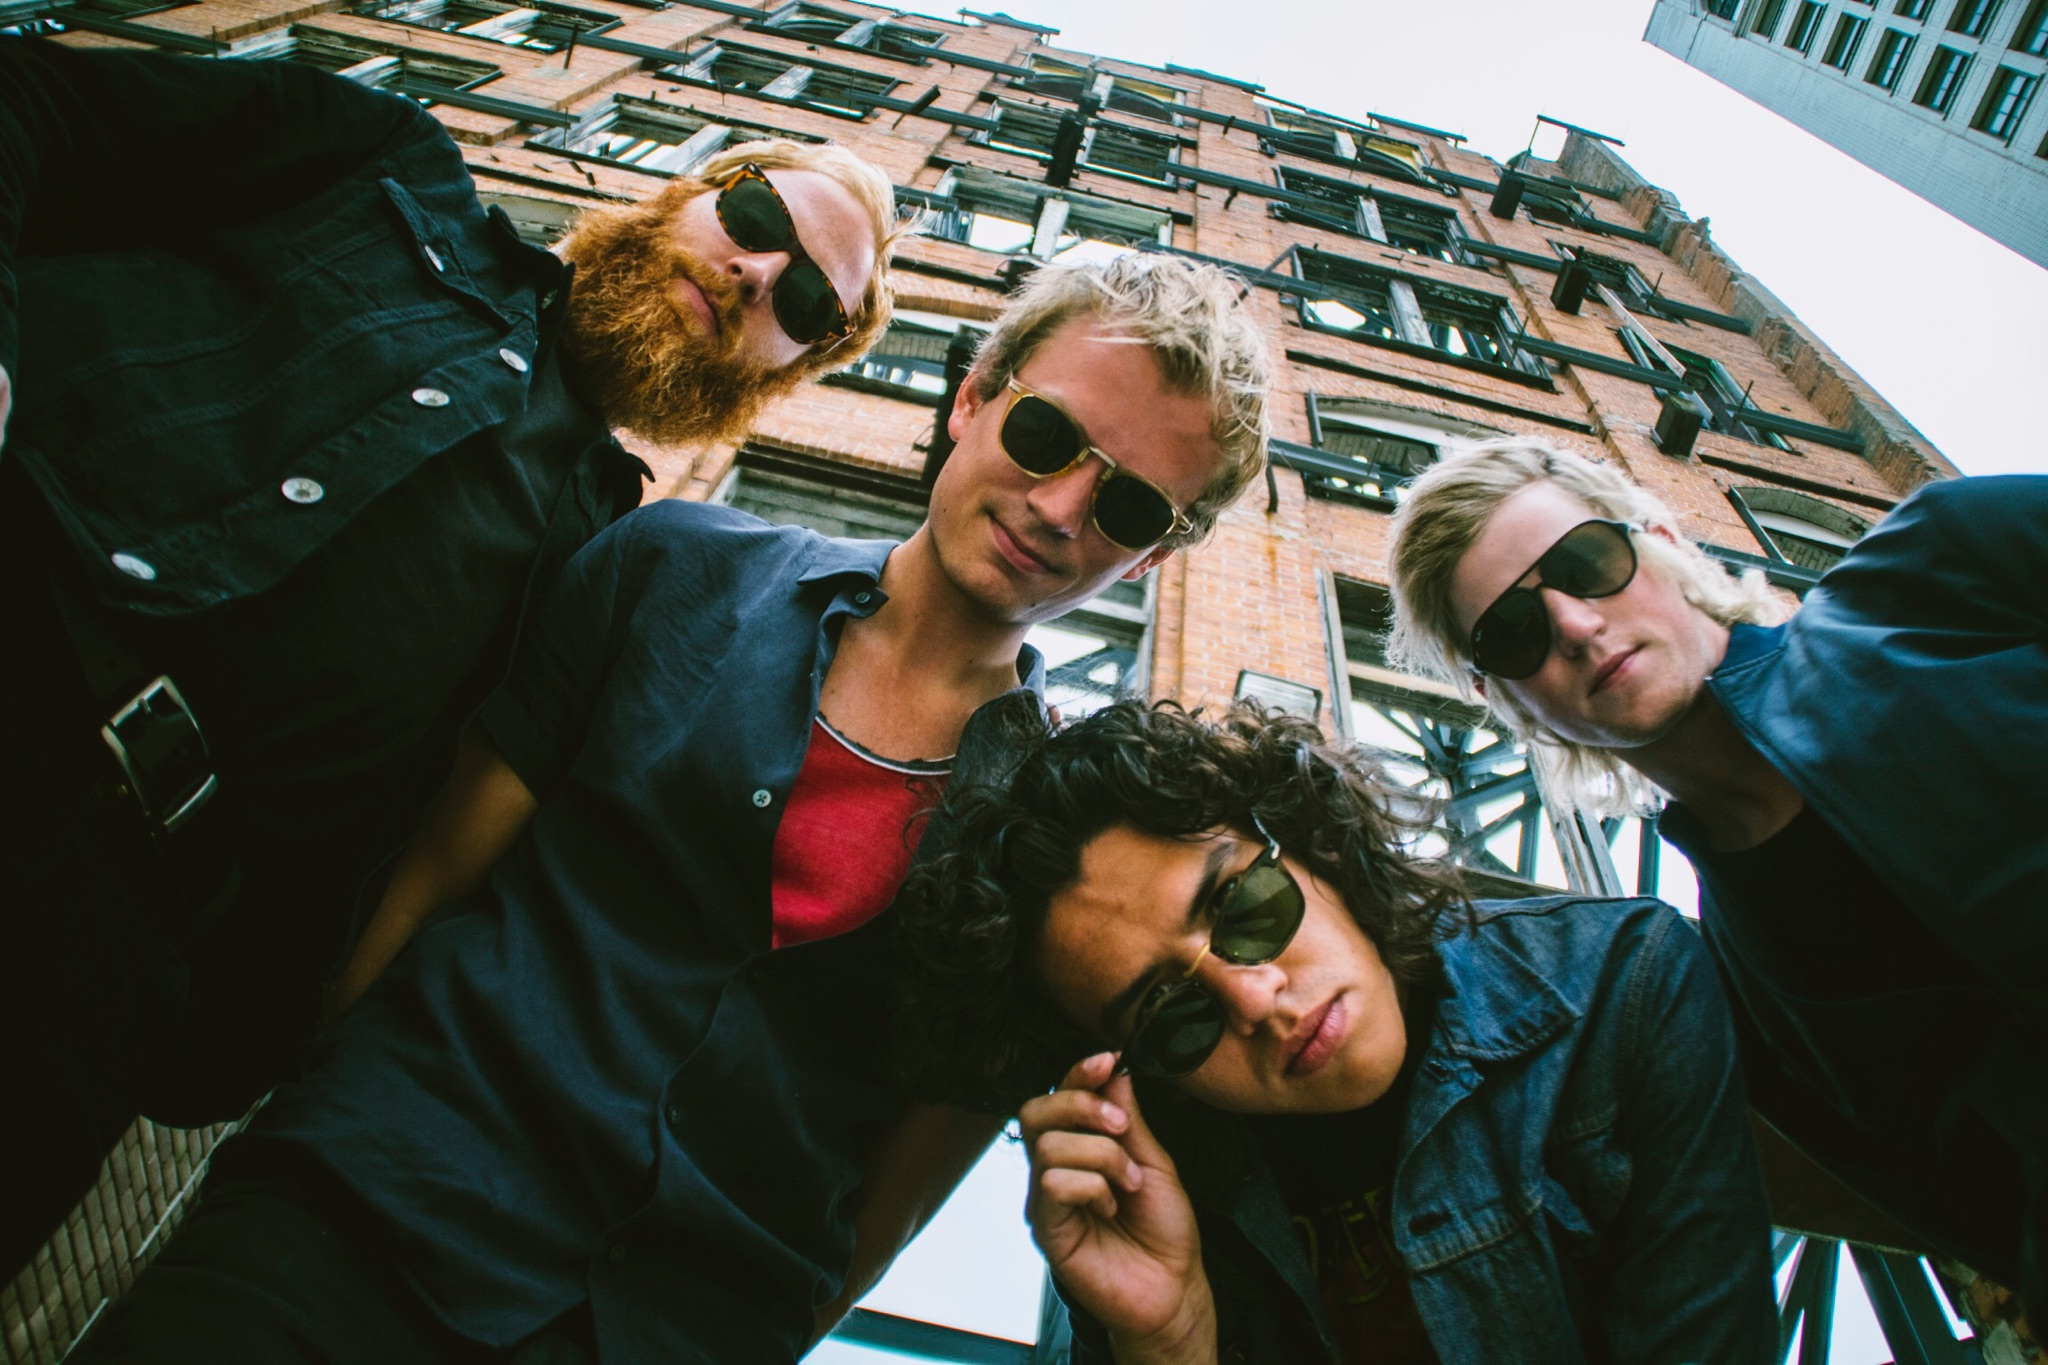 """PREMIERE: The Social Animals get tongue-in-cheek with """"Cheer Up Charlie"""""""